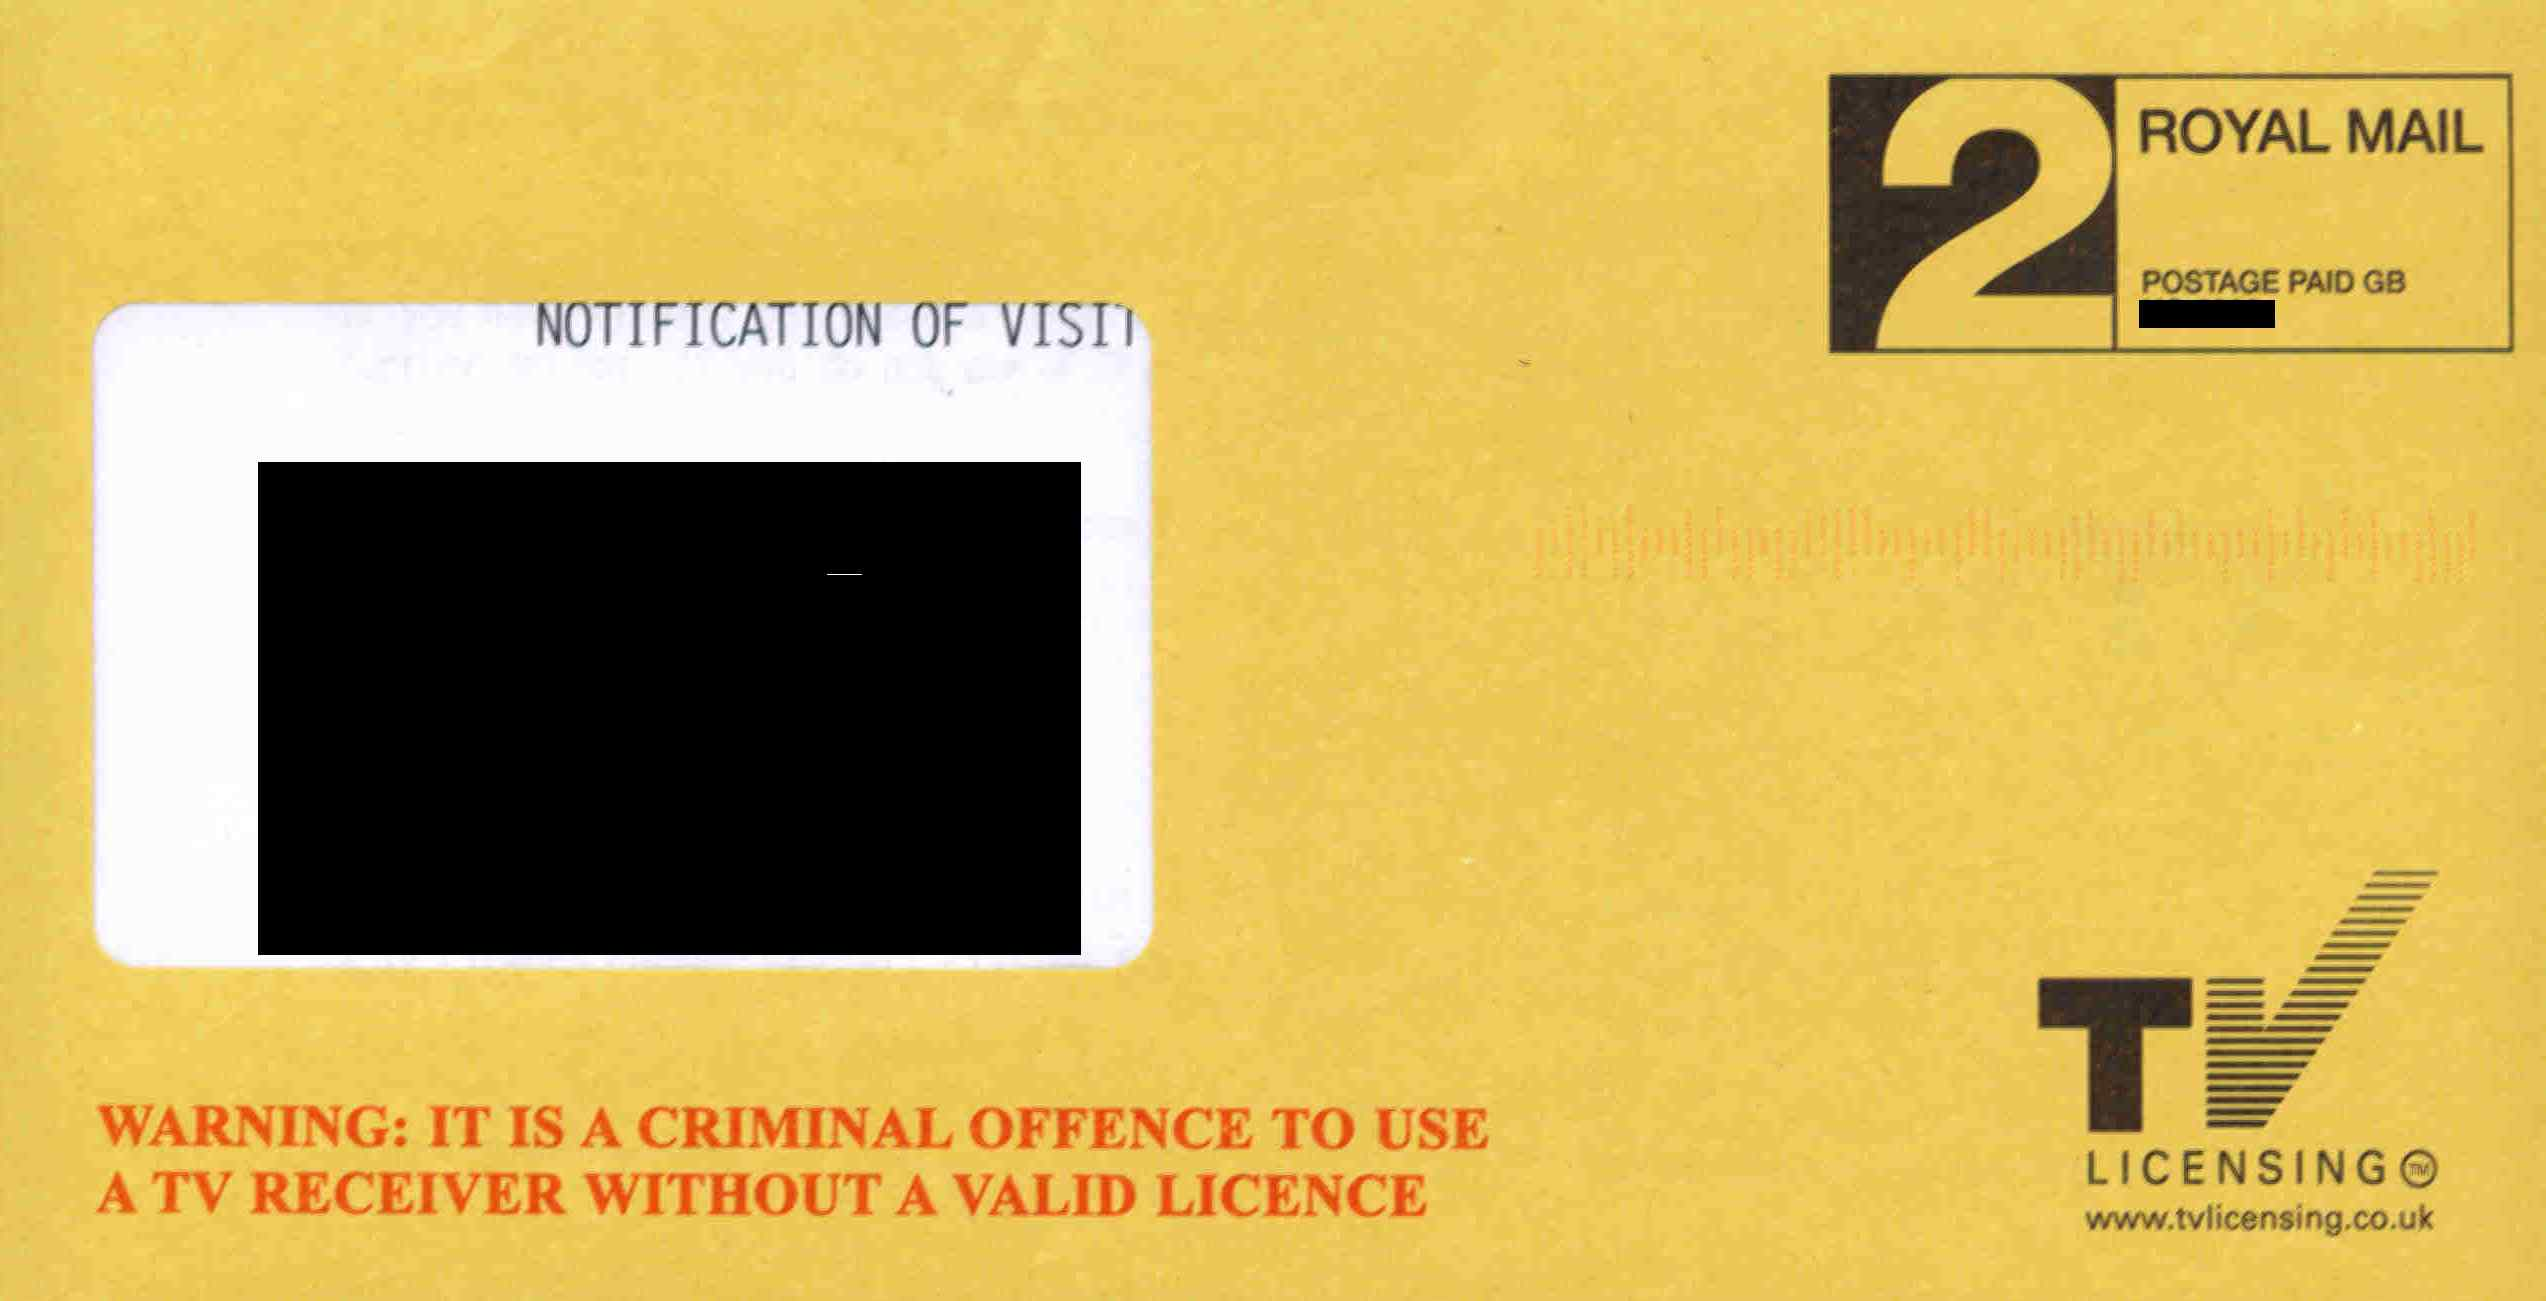 Warning: it is a criminal offence to use a TV receiver without a valid licence